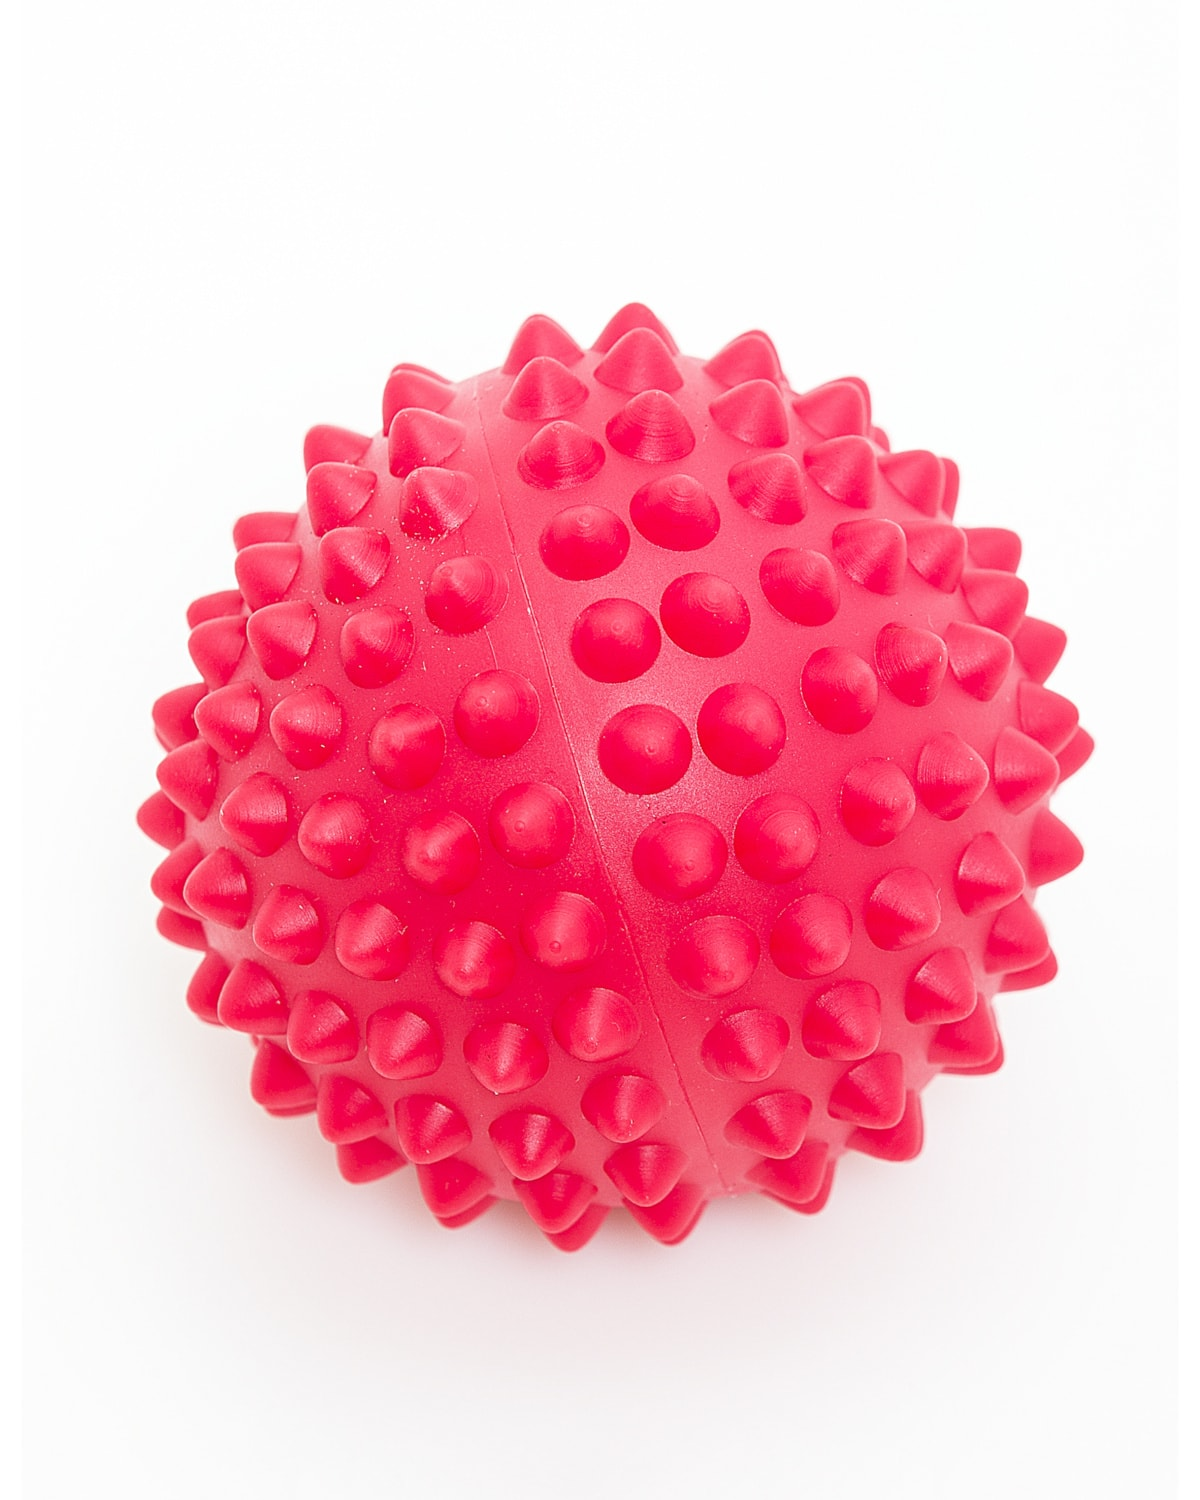 LEVITY Premium Fitness Spiky Trigger Ball 3